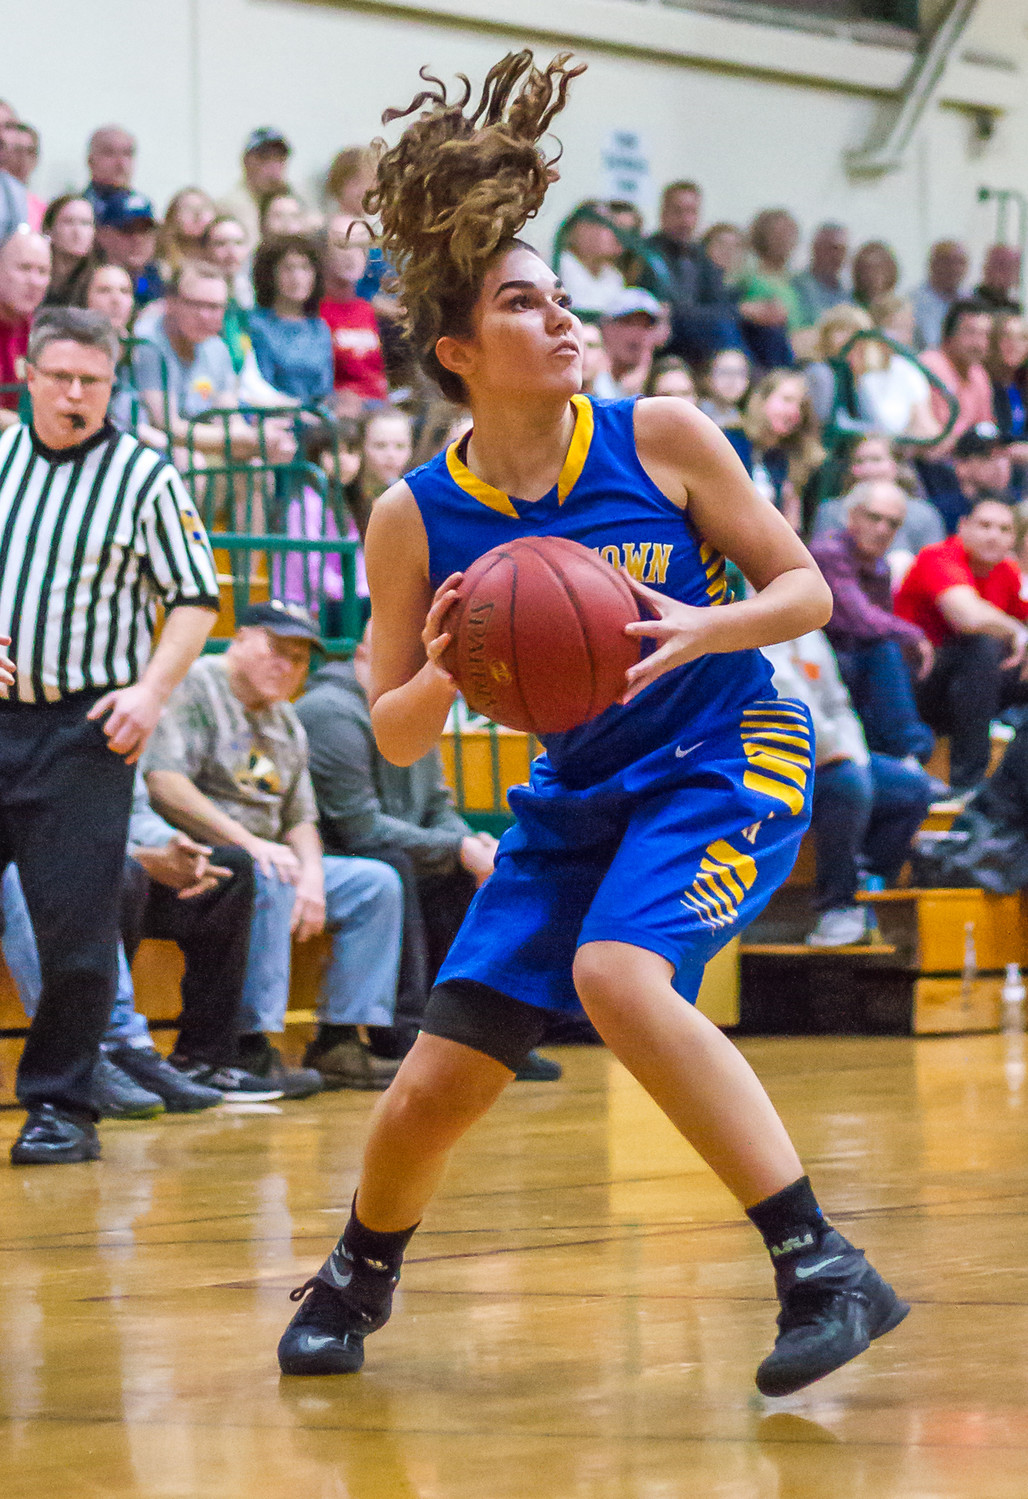 Makaila Nester looks for room to maneuver Feb. 20 vs. York Catholic in playoff action.